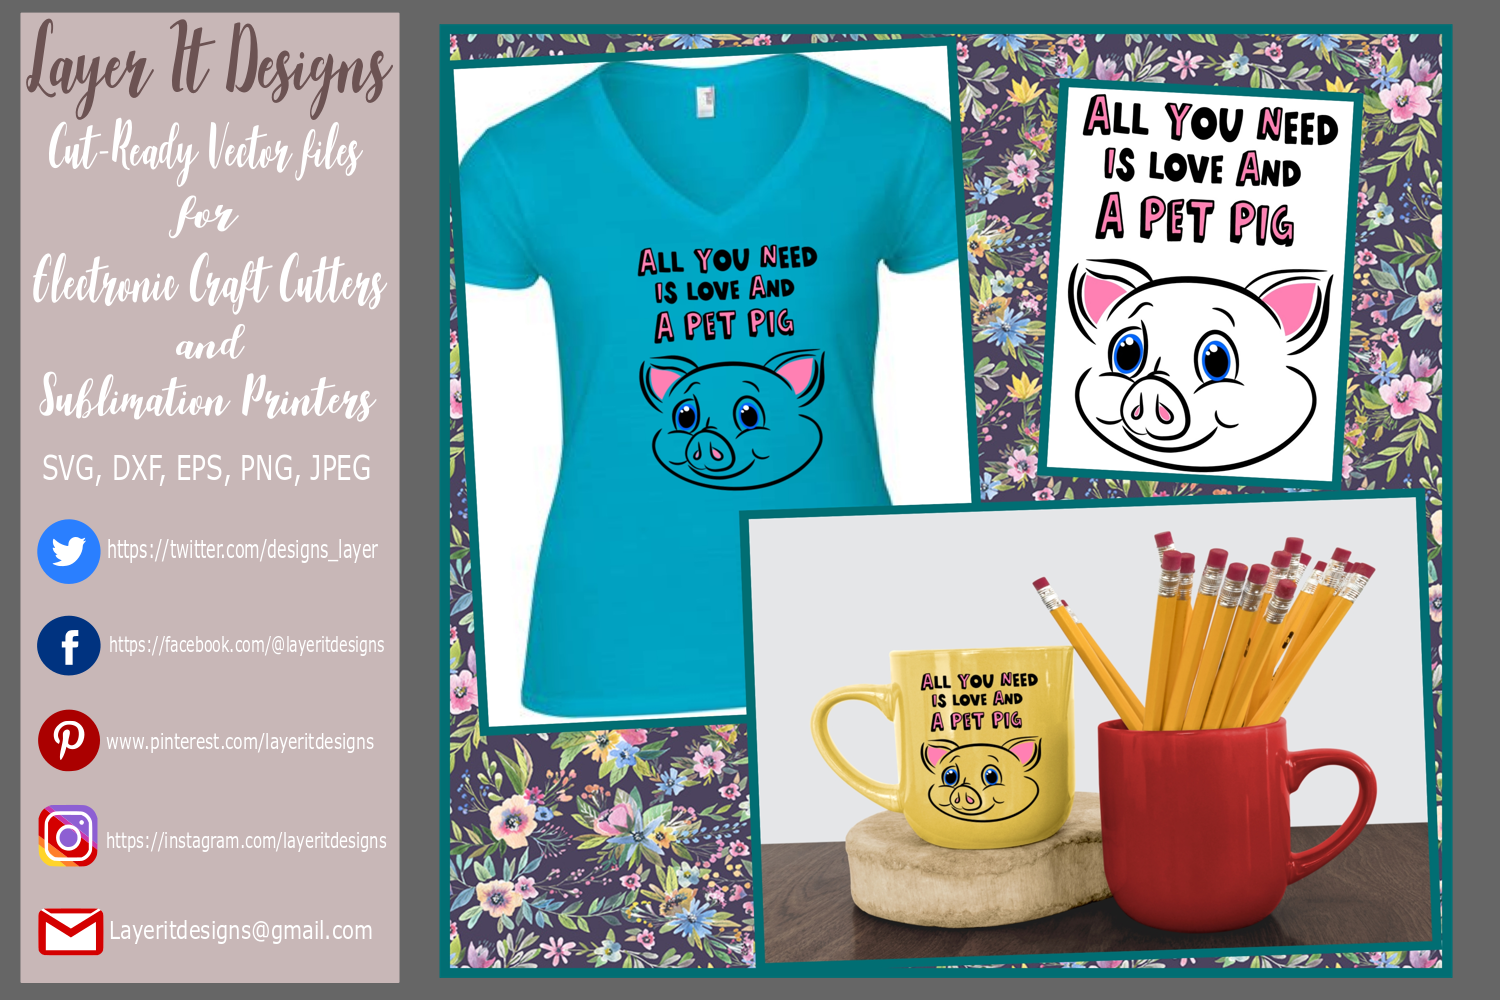 All You Need Is Love And A Pet Pig Design file example image 1